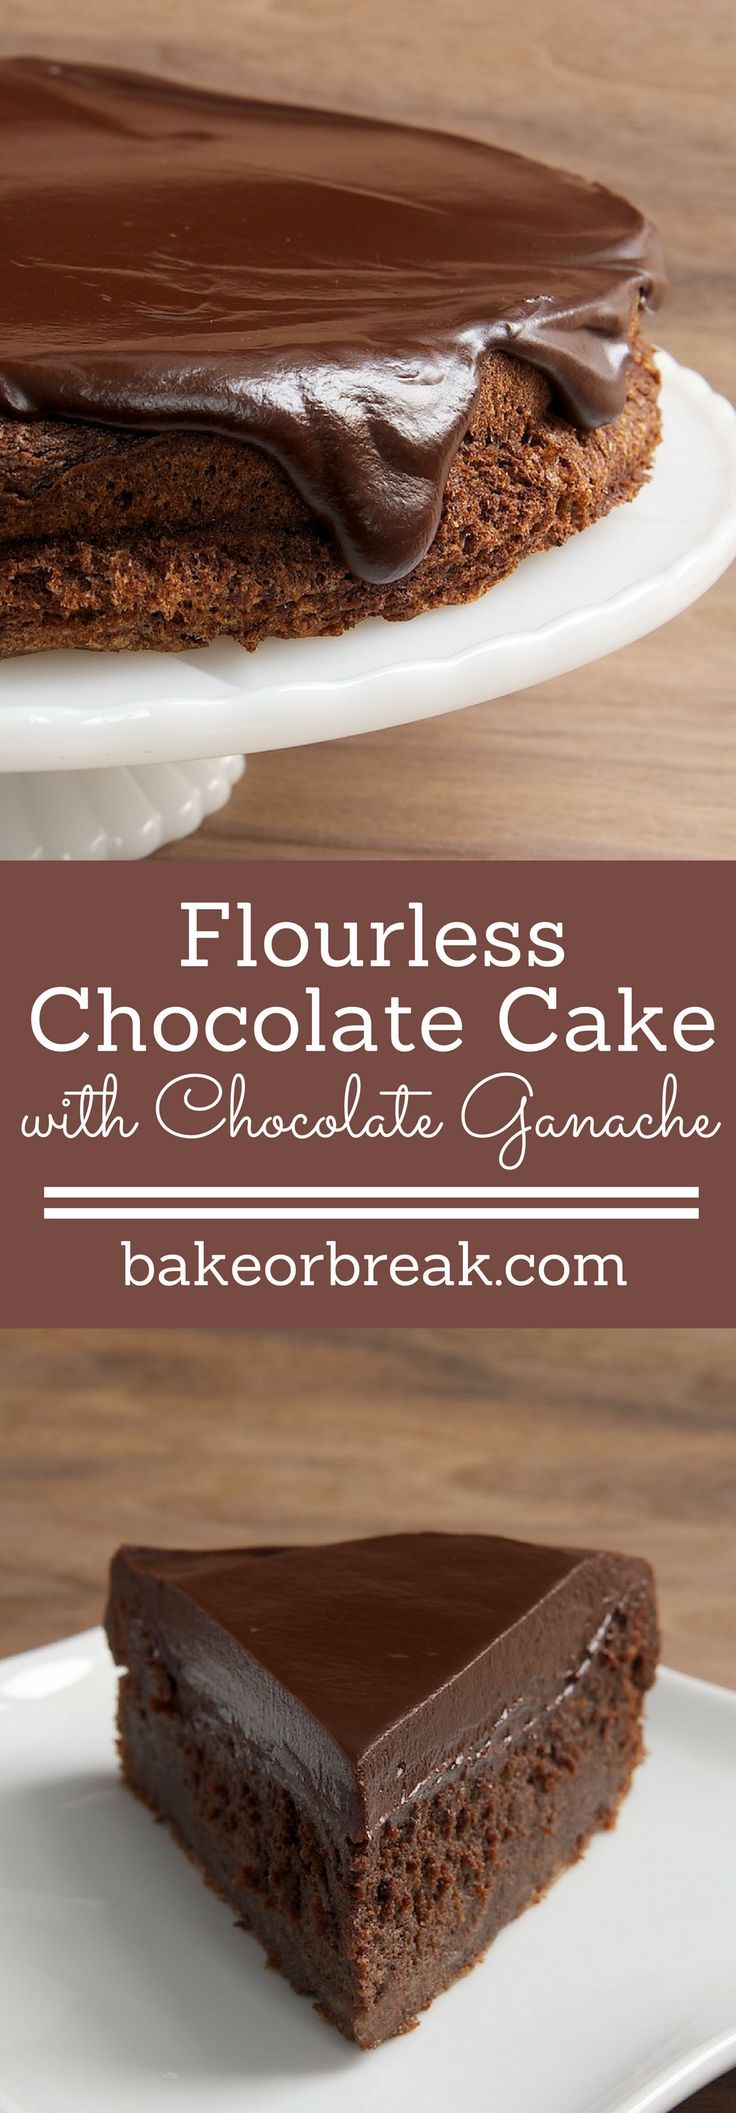 If you want a full-out chocolate dessert experience, look no further than this Flourless Chocolate Cake with Chocolate Ganache. - Bake or Break